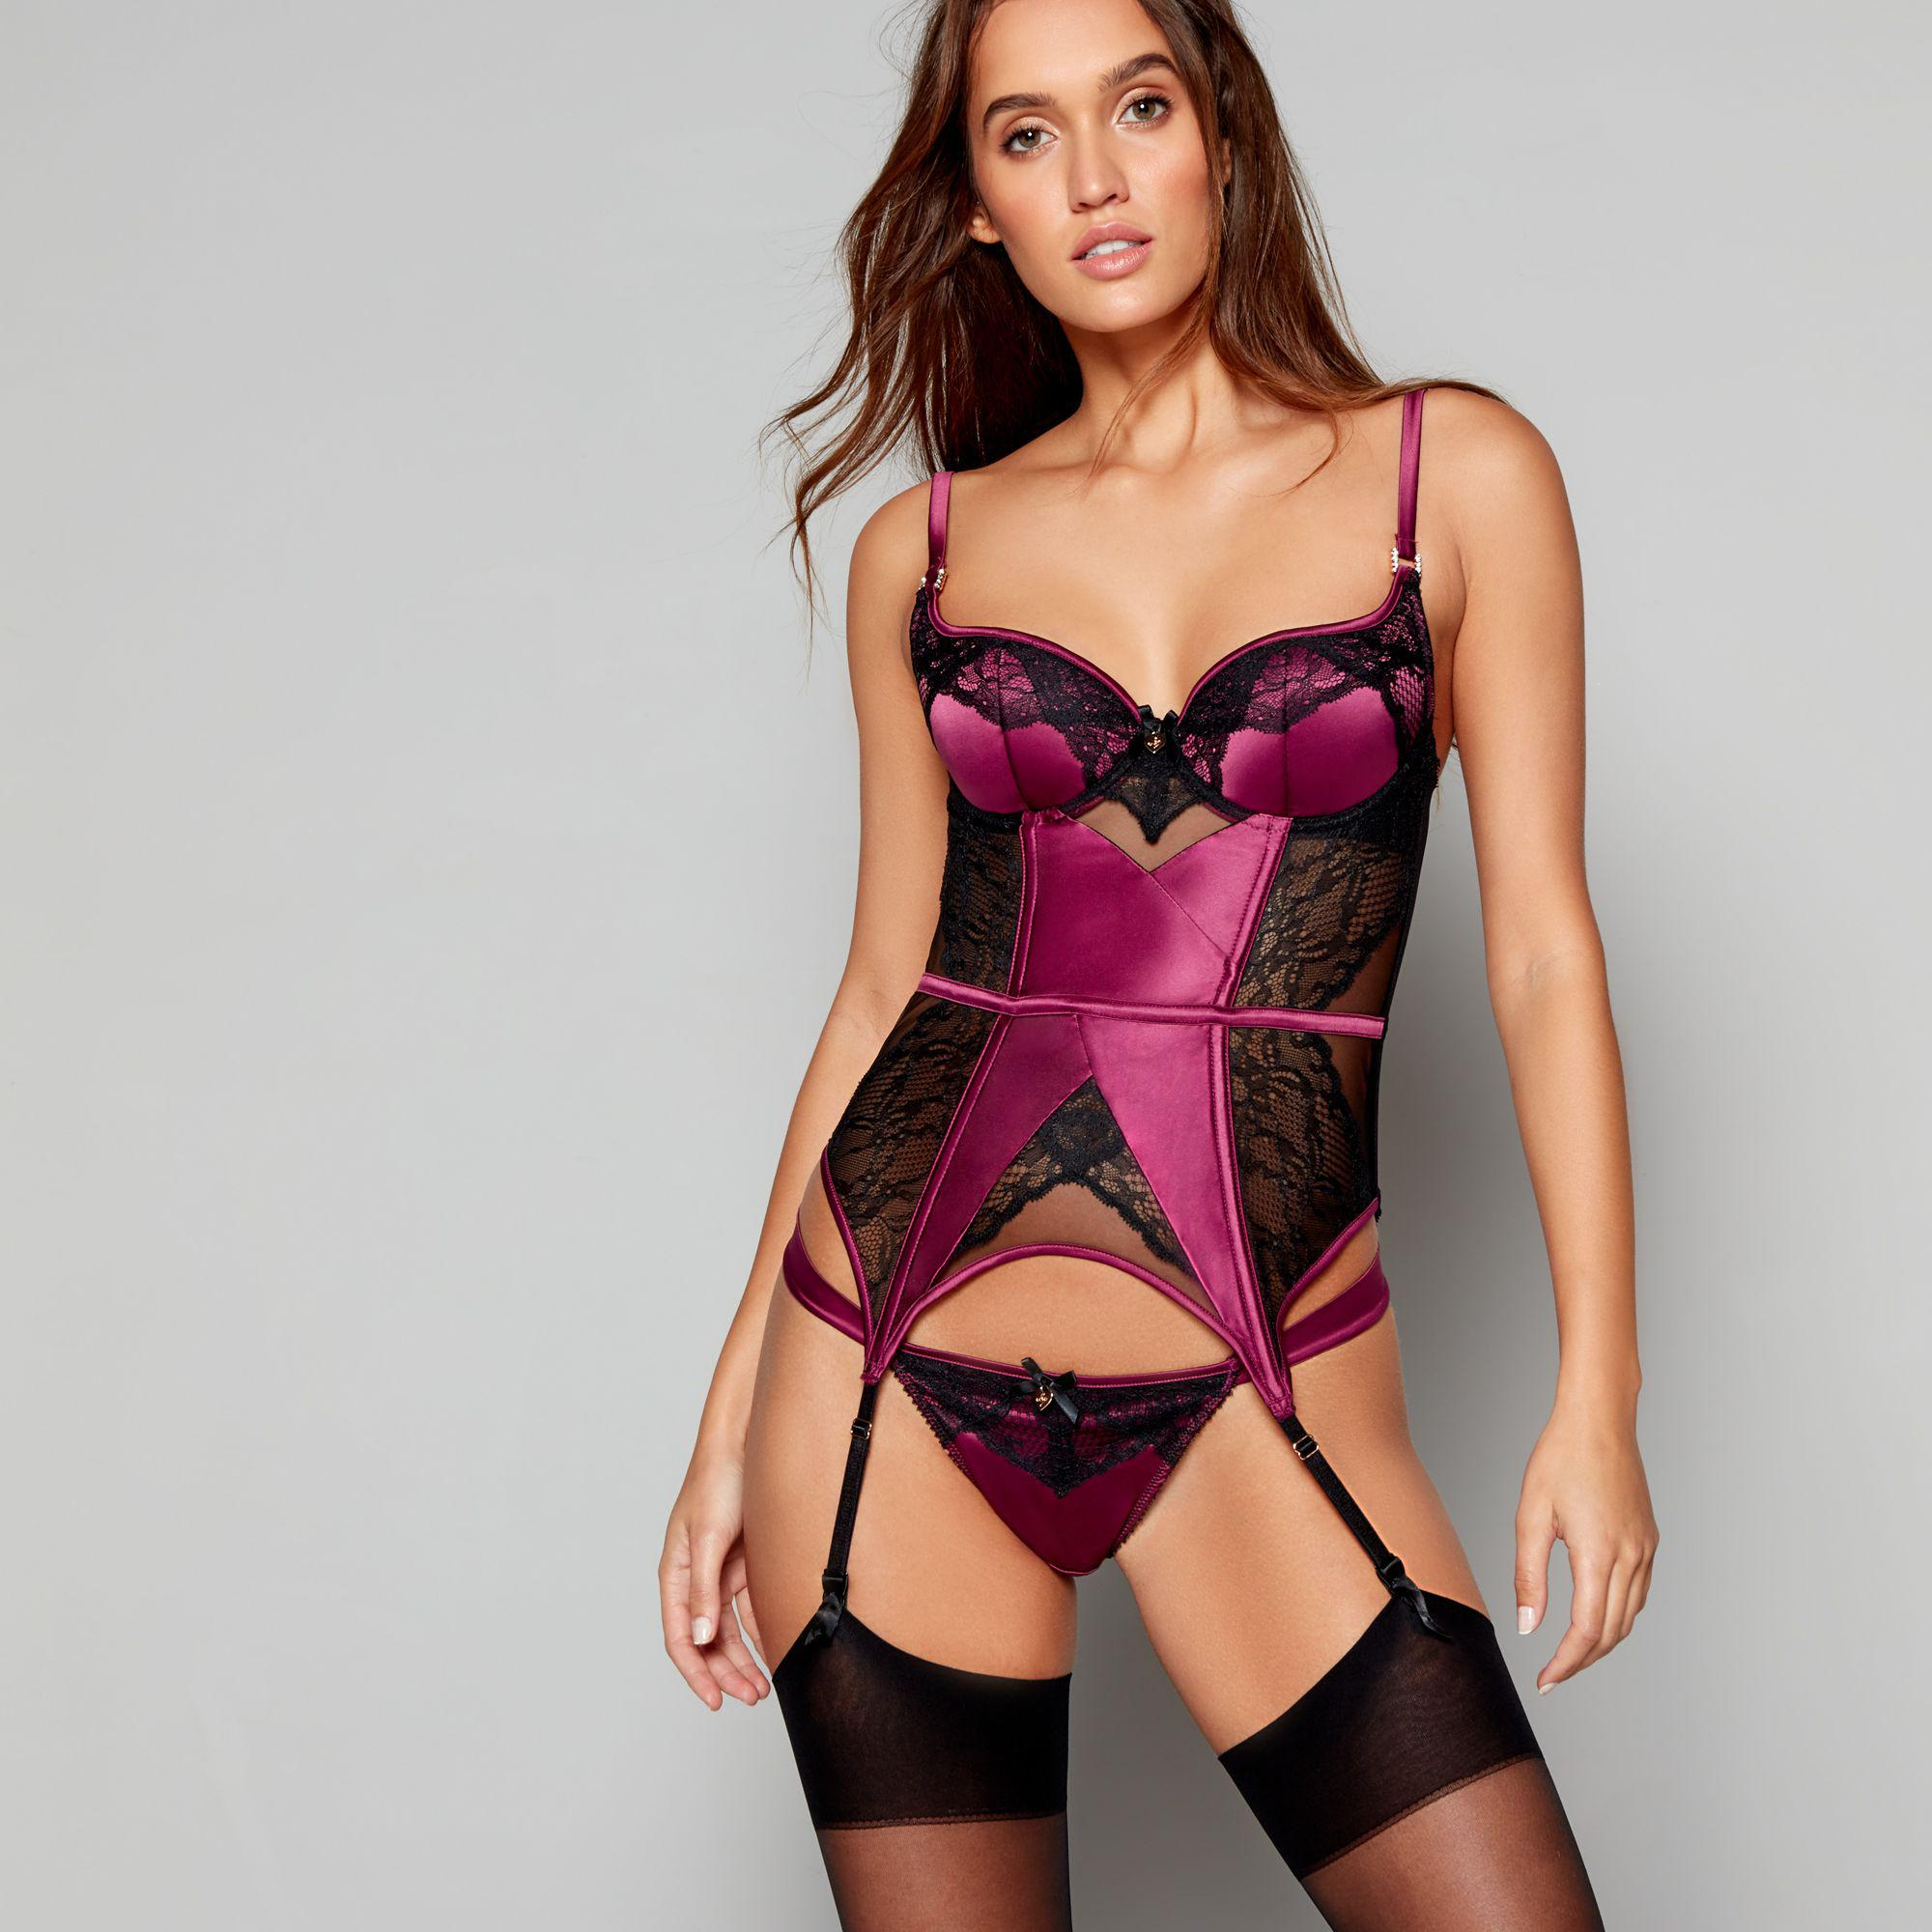 cb87ead746496 Lipsy Purple Satin 'kimela' Suspender Basque in Red - Lyst